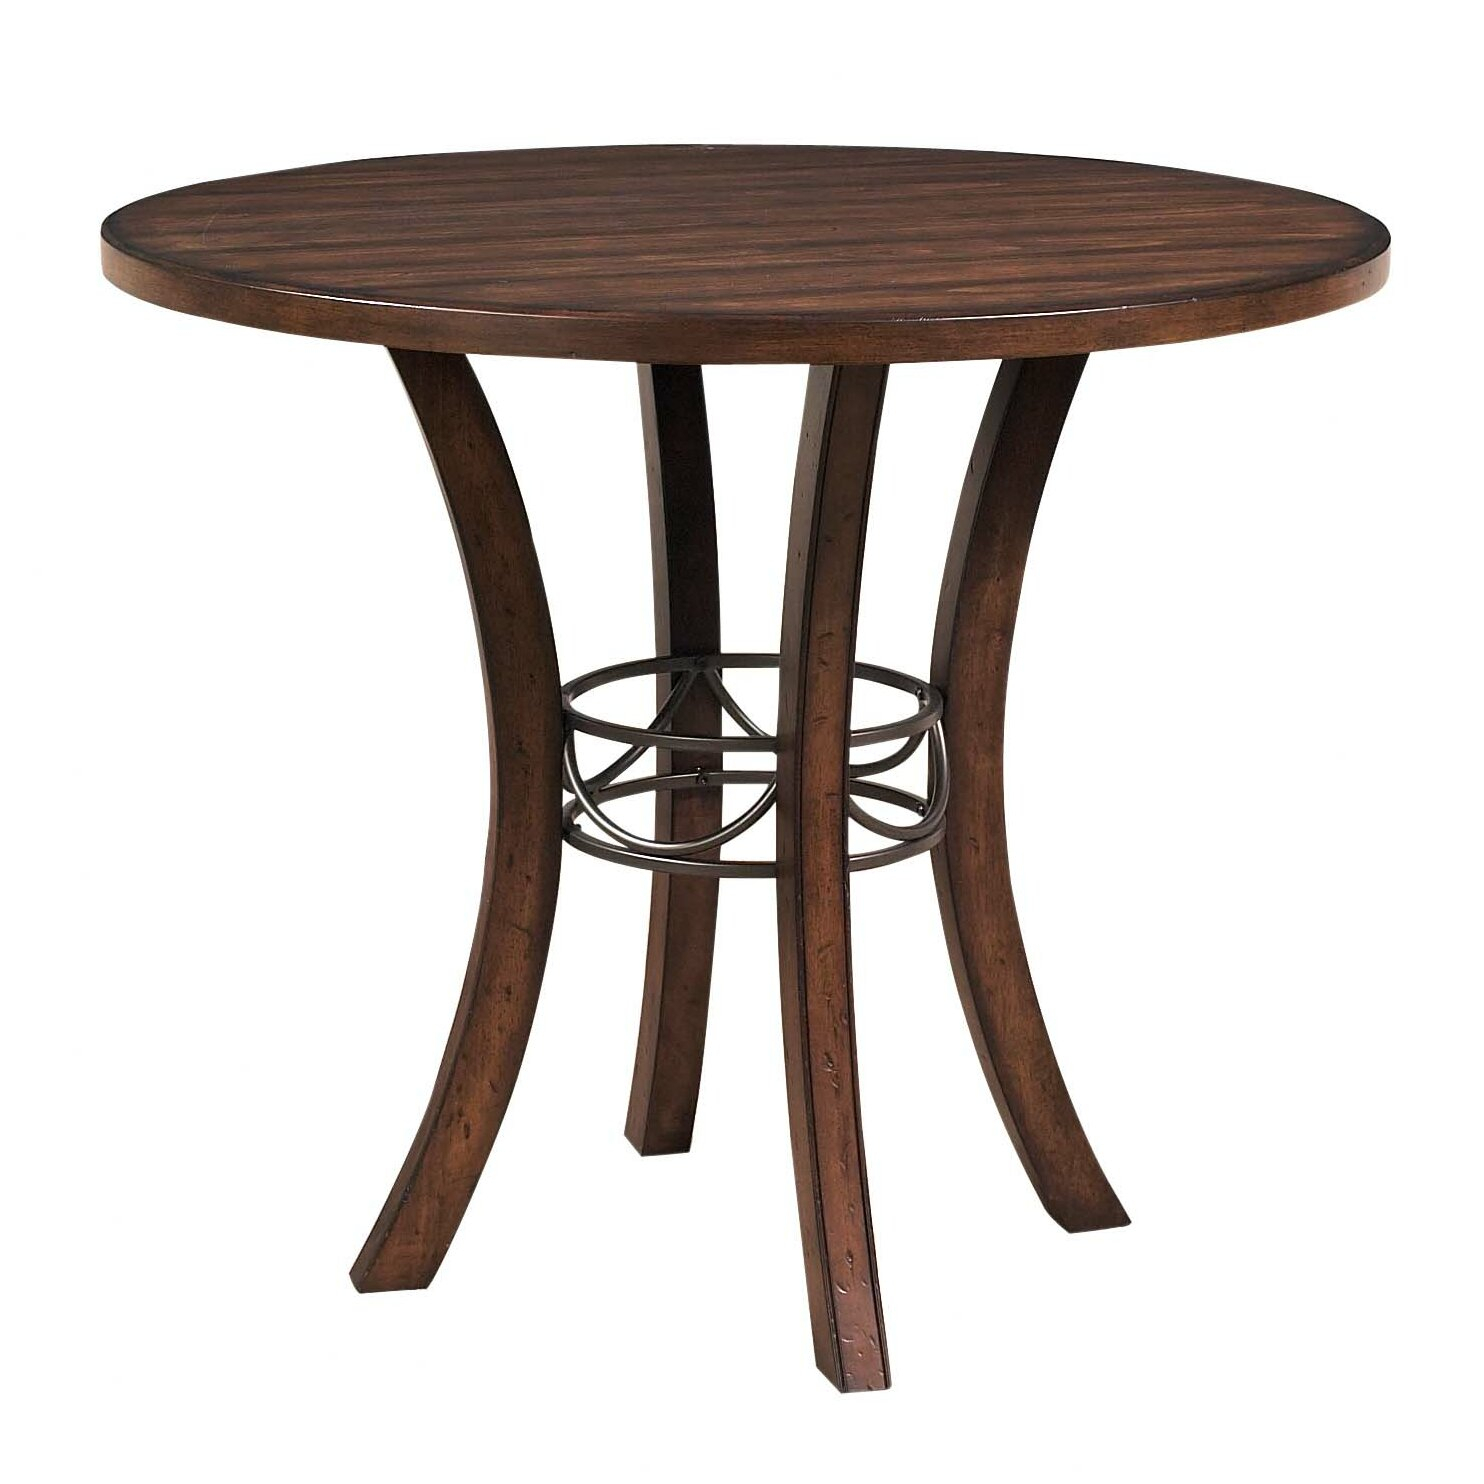 Hillsdale Cameron Round Counter Height Dining Table Intended For Latest Bushrah Counter Height Pedestal Dining Tables (View 5 of 15)